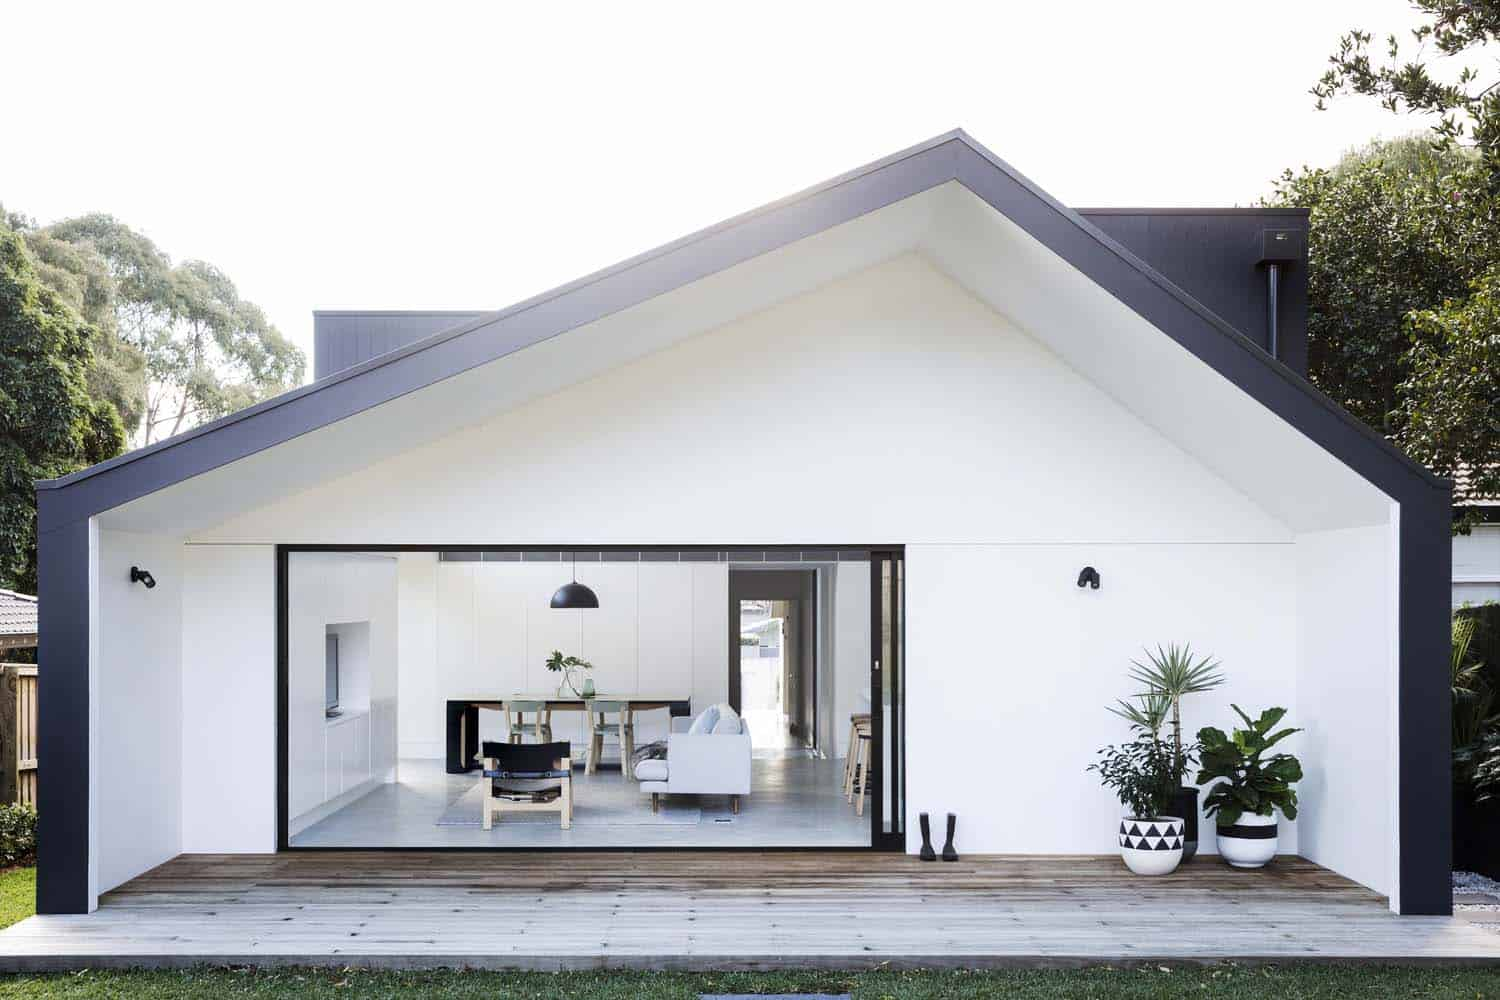 Californian Bungalow Renovation-Architect Prineas-01-1 Kindesign